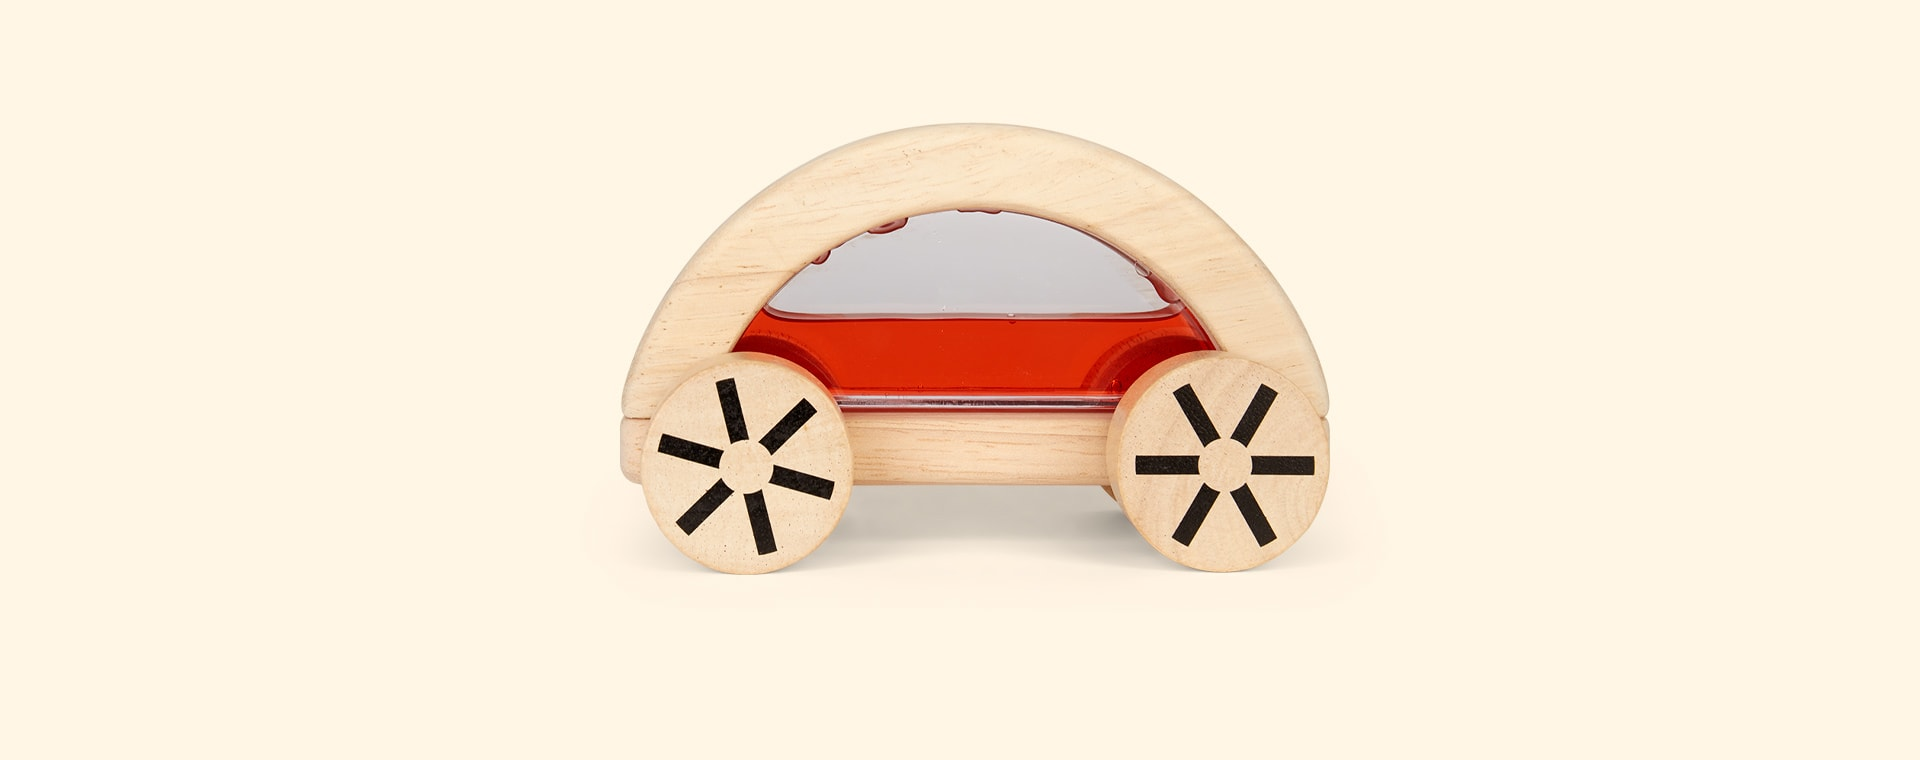 Red Plan Toys Wautomobile